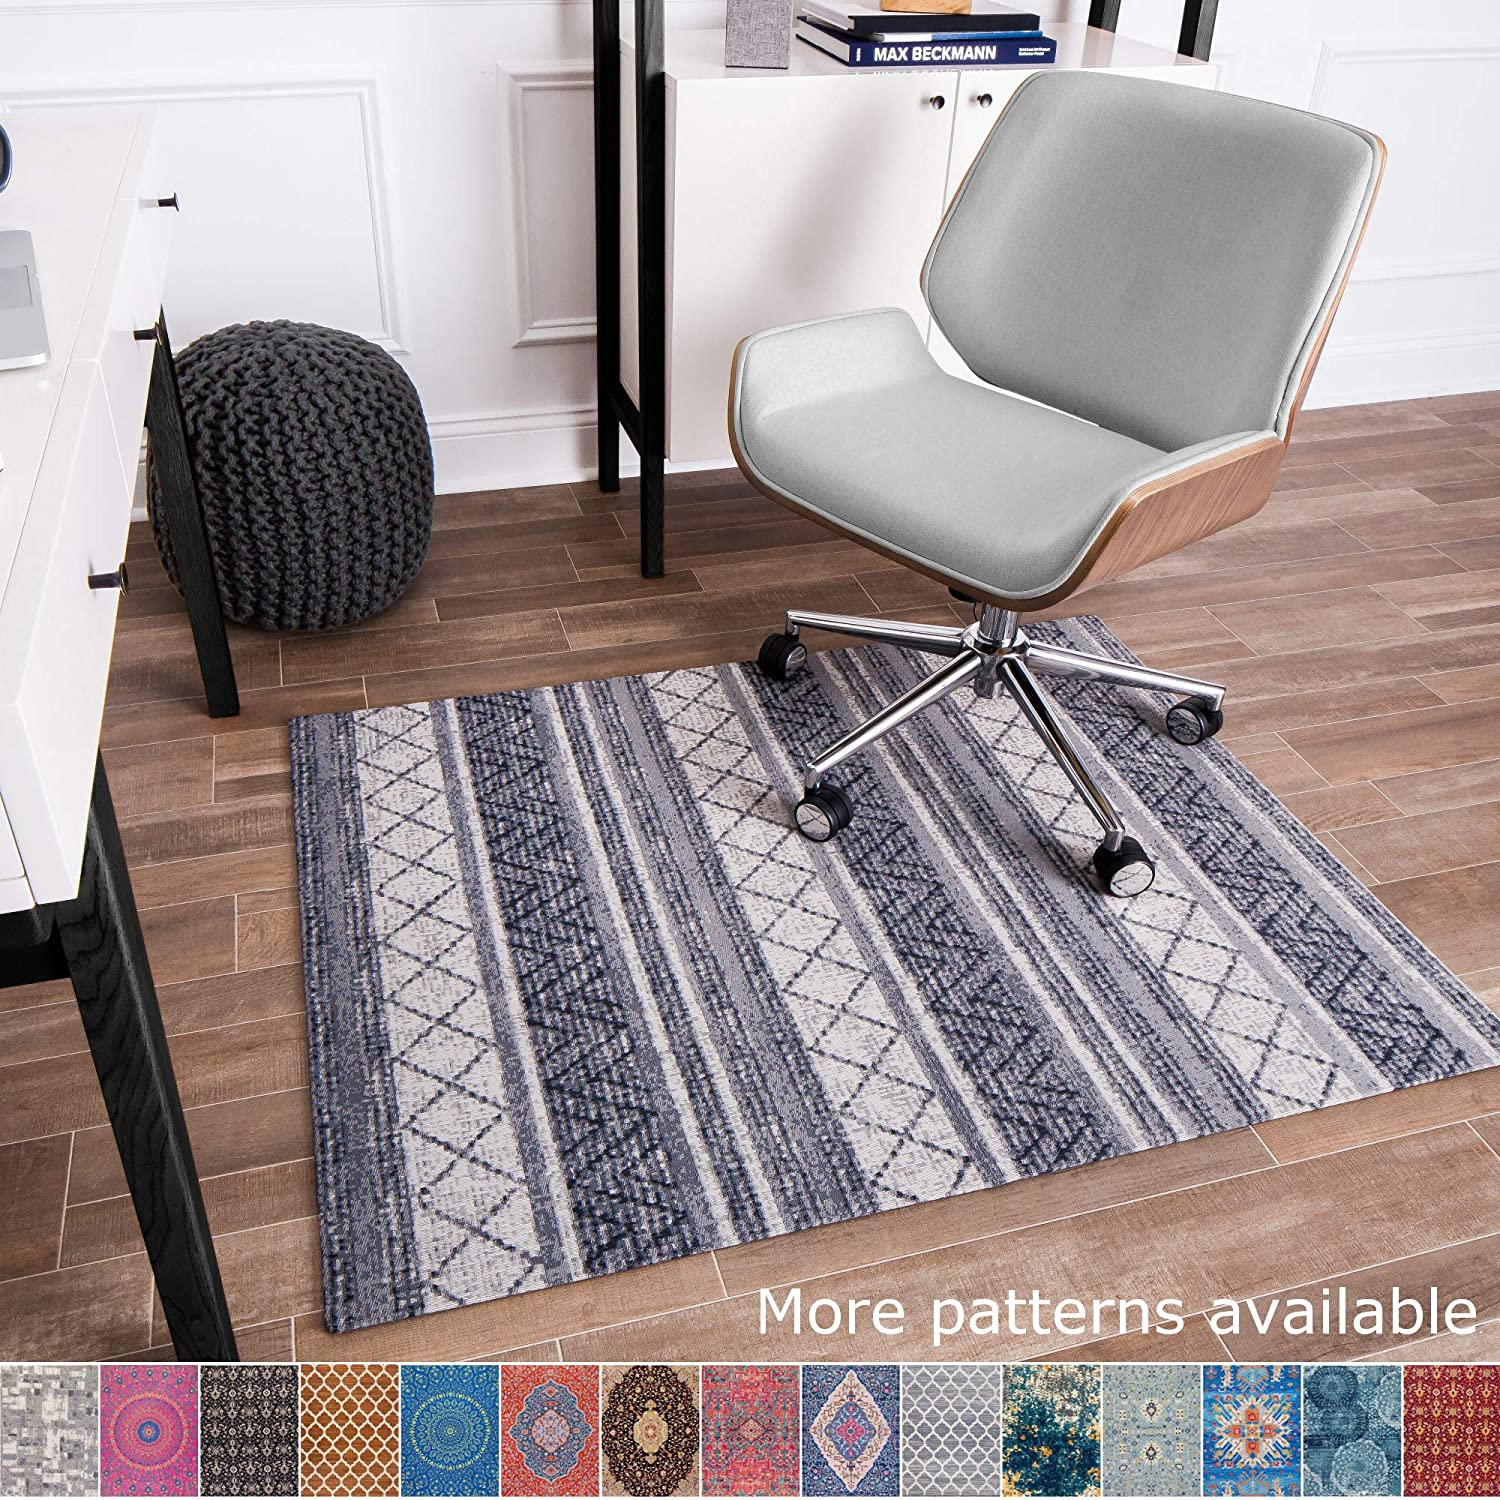 """Anji Mountain Chair Mat Rug'd Collection, 1/4"""" Thick - For Low Pile Carpets & Hard Surfaces, Alesund AMB9013, Gray Tone Tribal Stripes"""